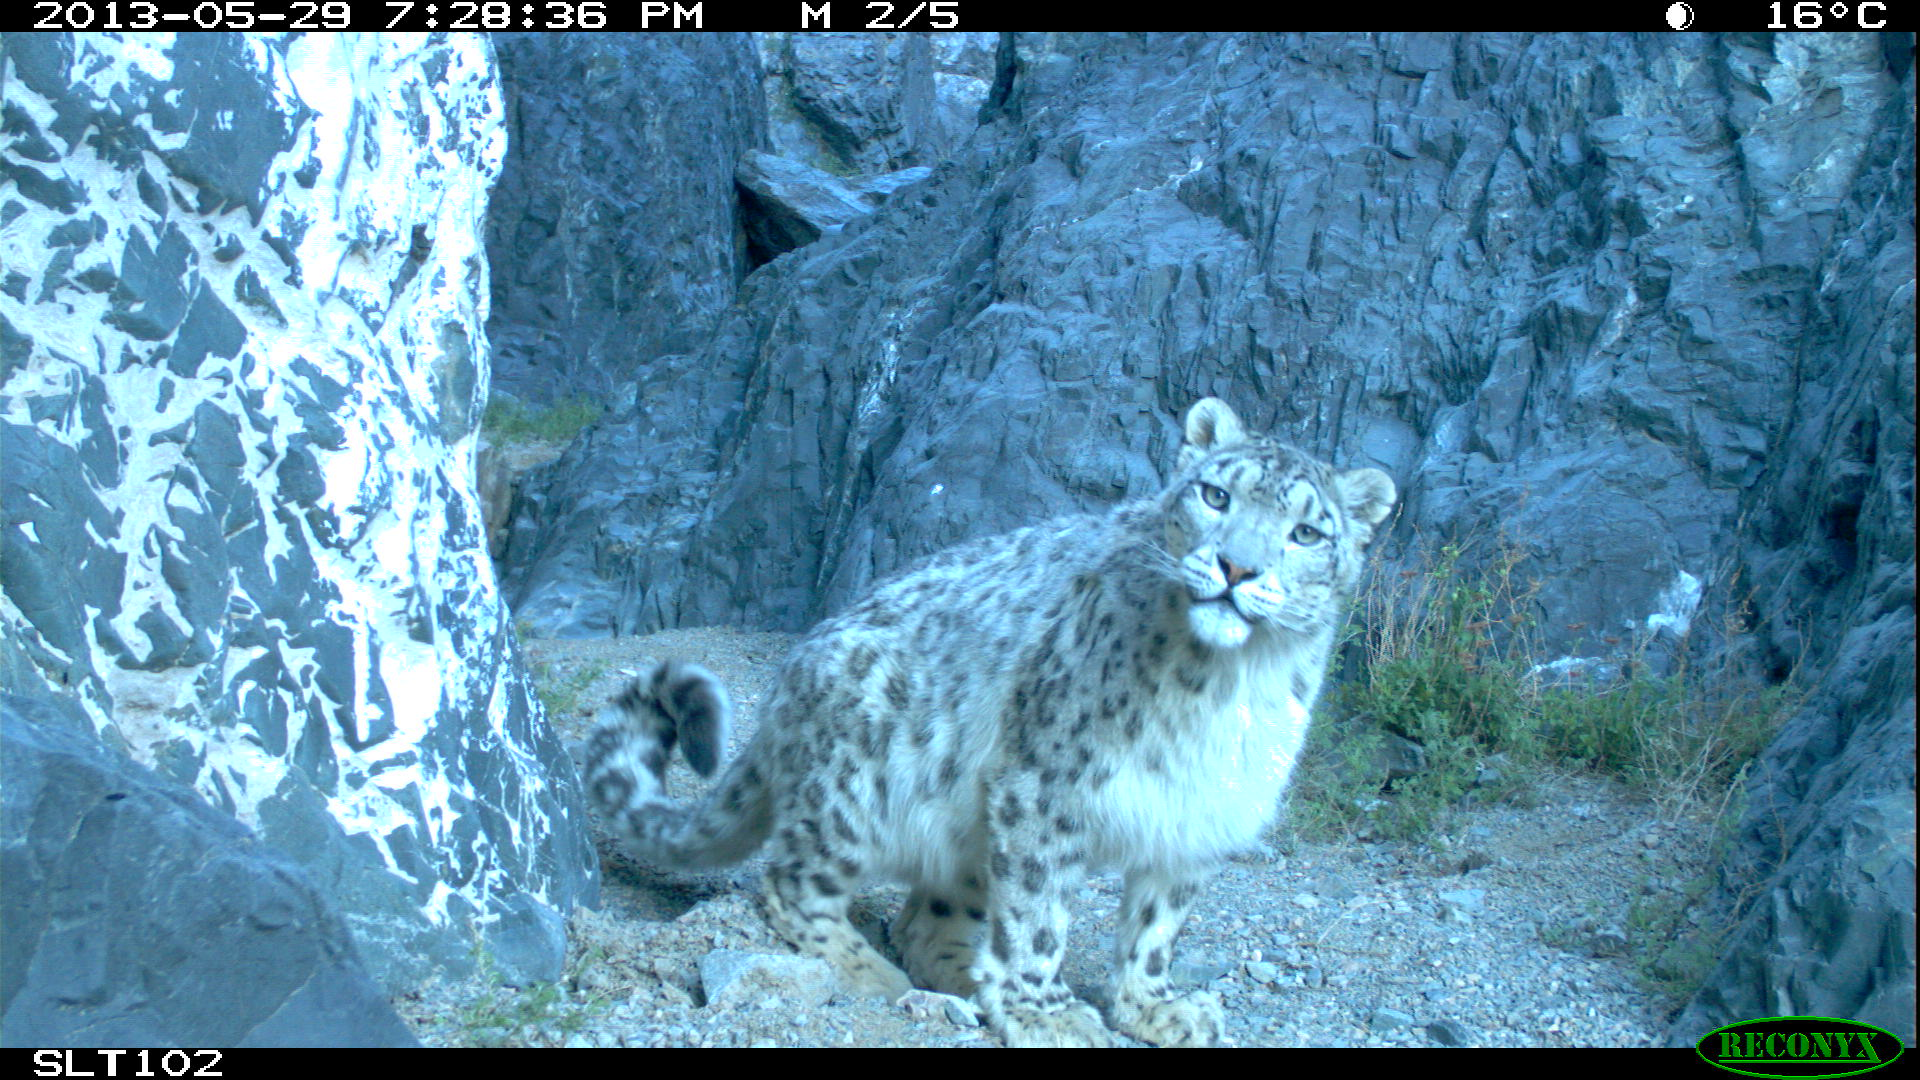 one of up to 250 snow leopards SLE is protecting in Mongolia